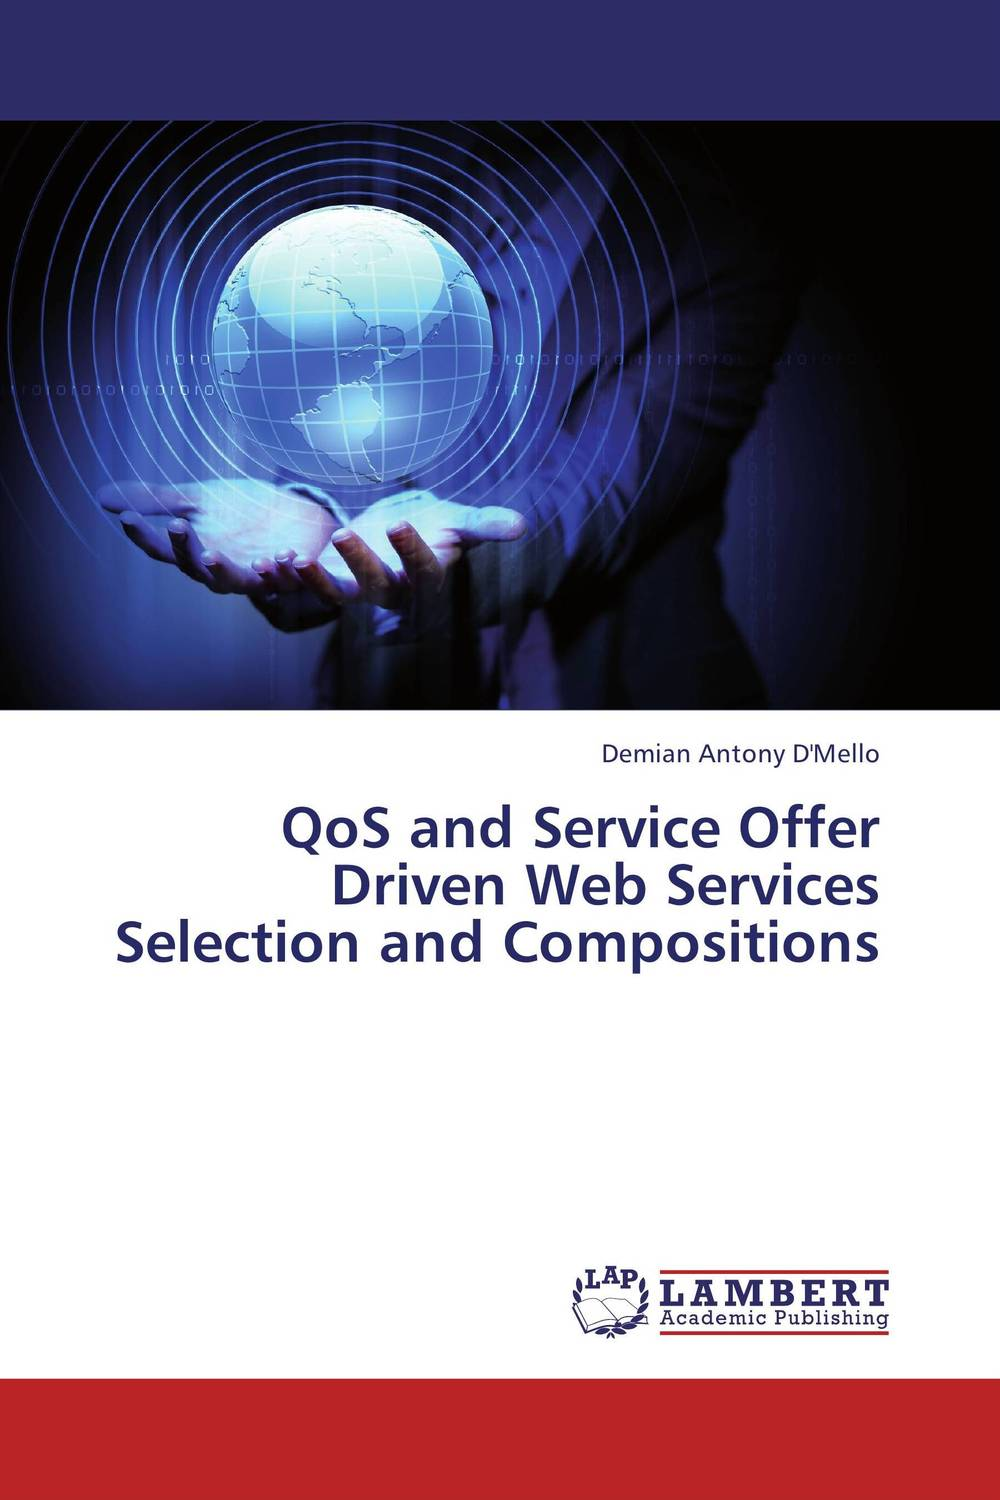 QoS and Service Offer Driven Web Services Selection and Compositions migration of legacy system to service oriented architecture soa